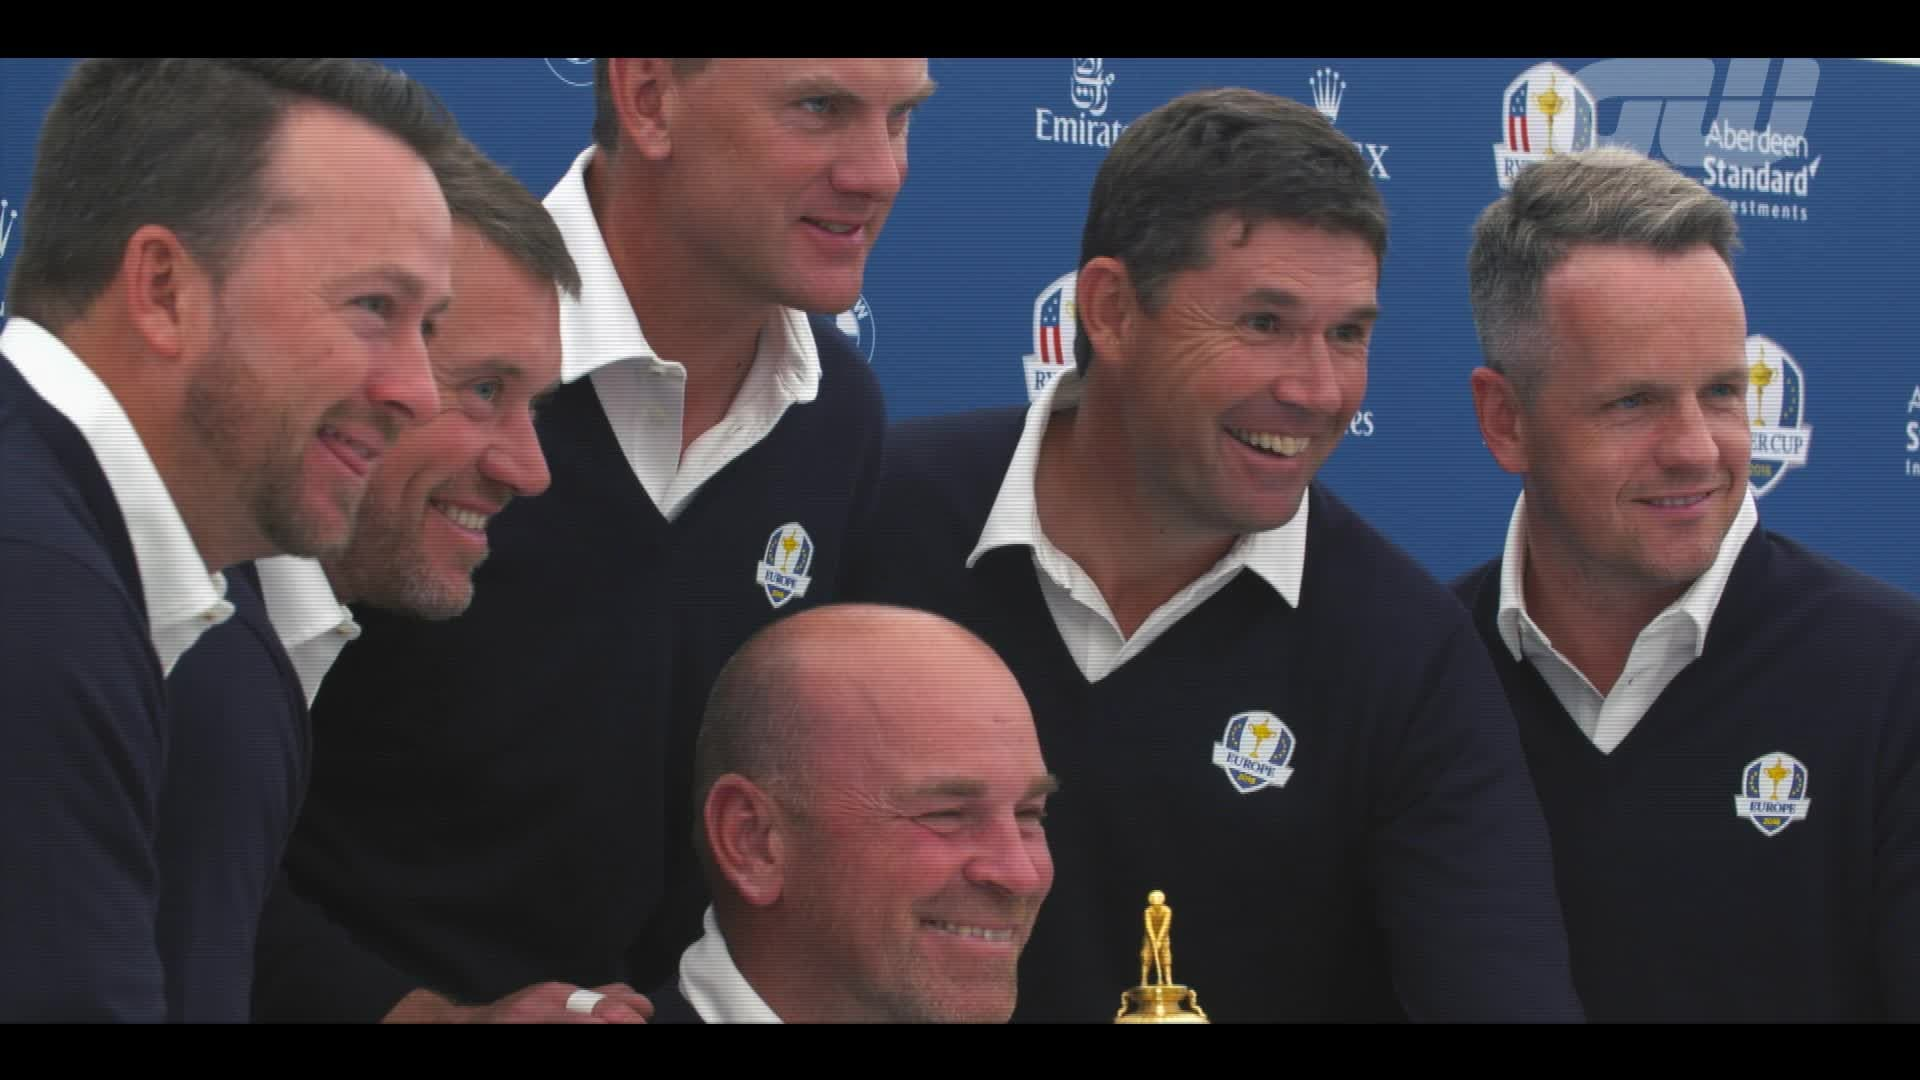 Ryder cup vice captain betting what happened to the real talk show on bet